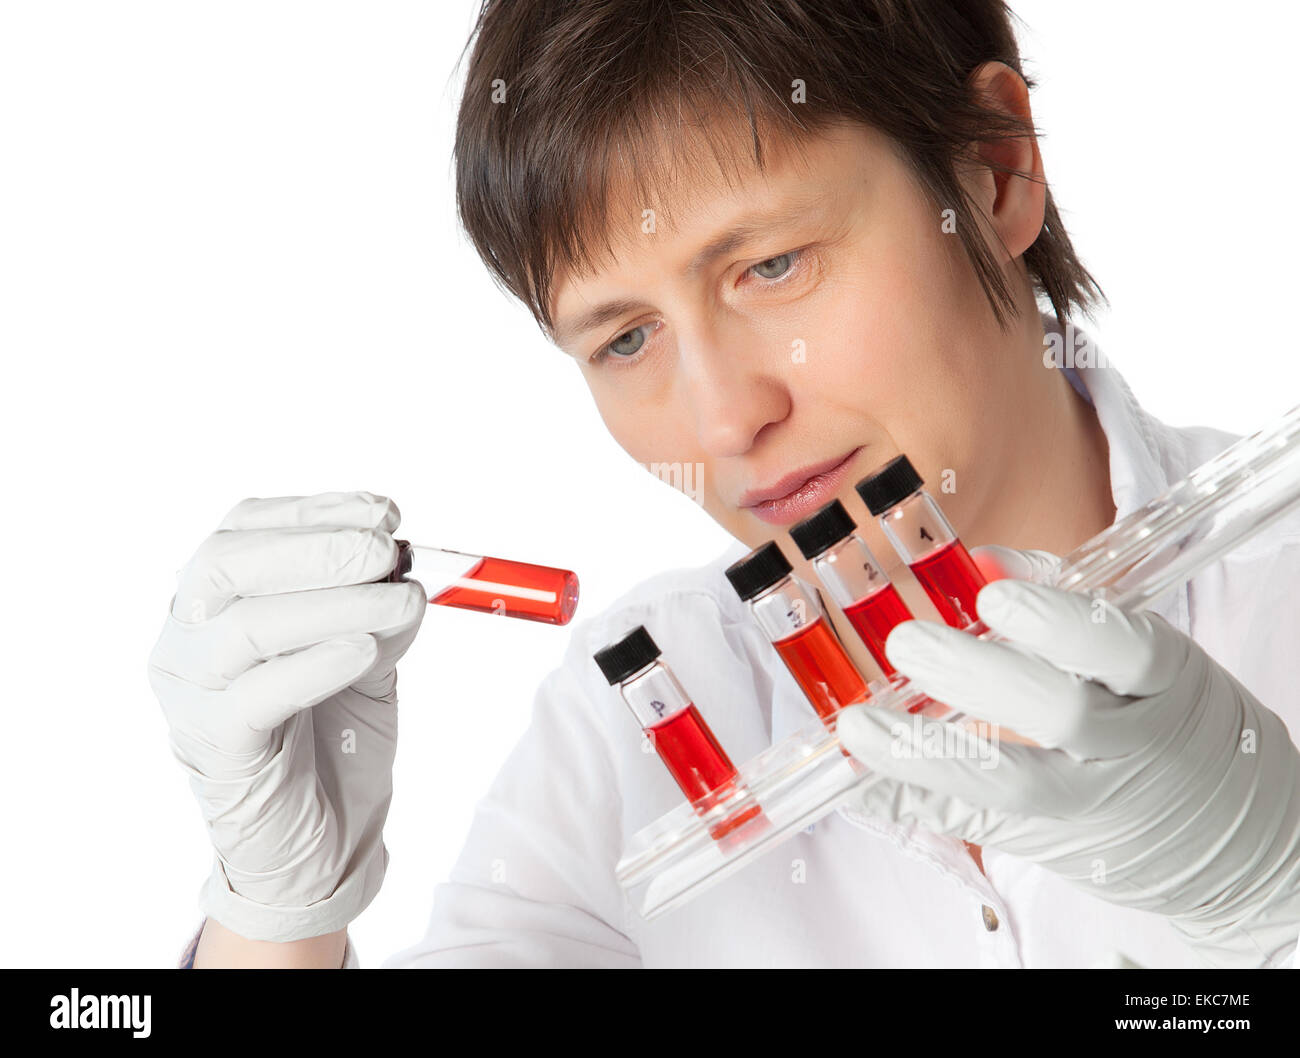 Isolated scientist woman in lab coat with  liquid samples. - Stock Image